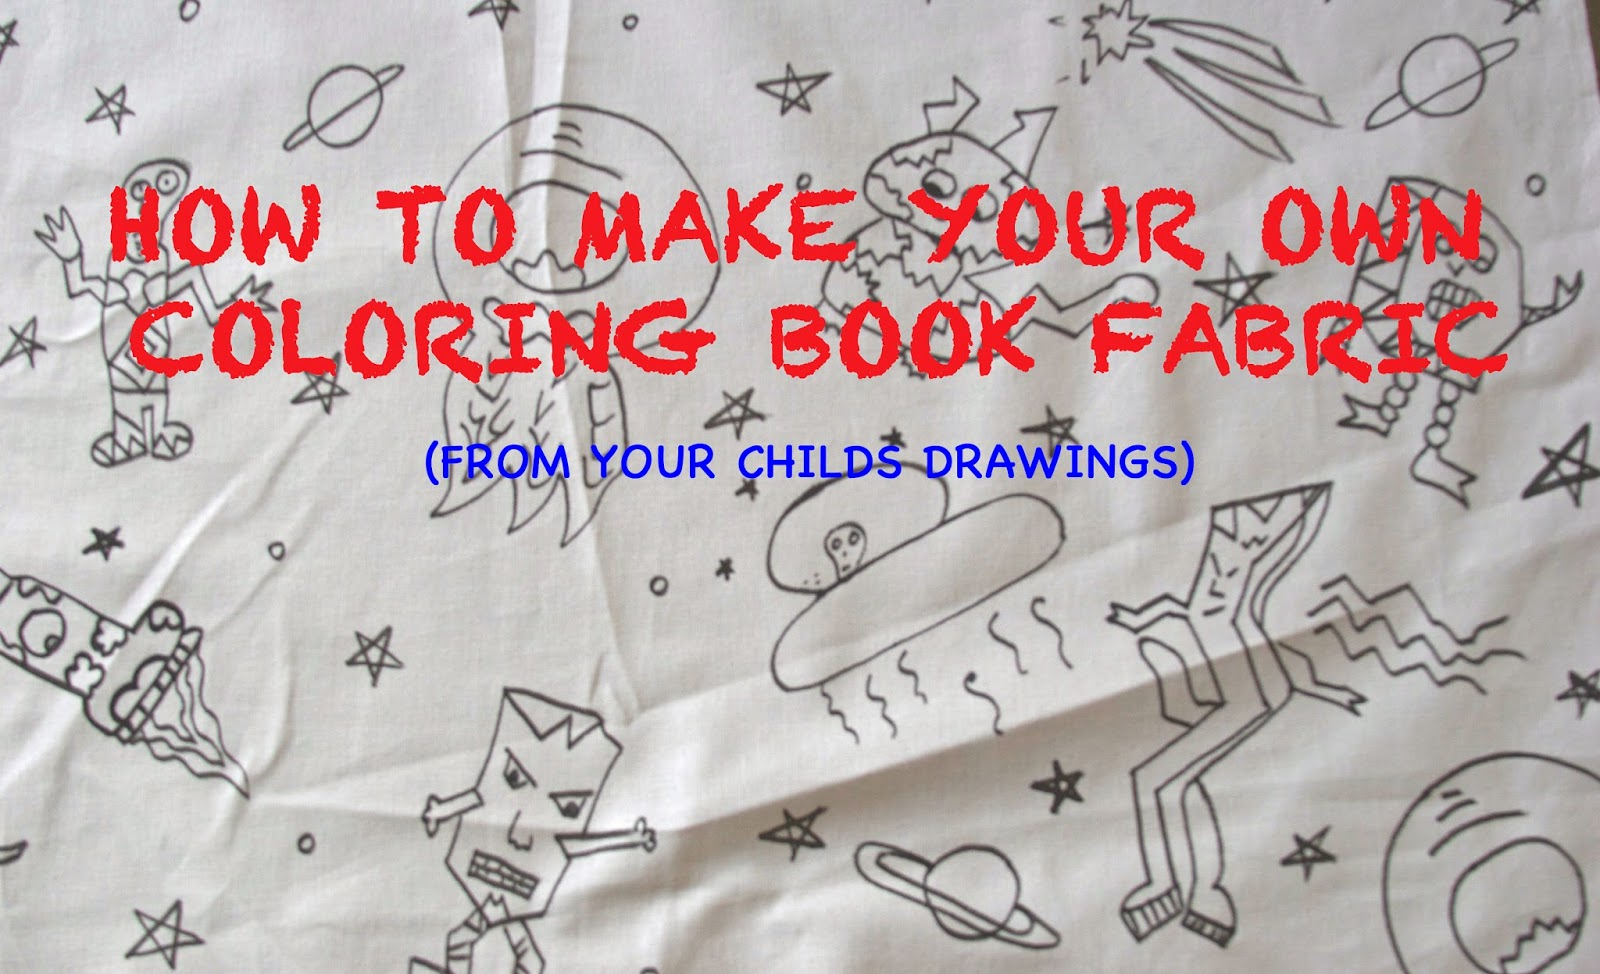 Print Your Own Coloring Book